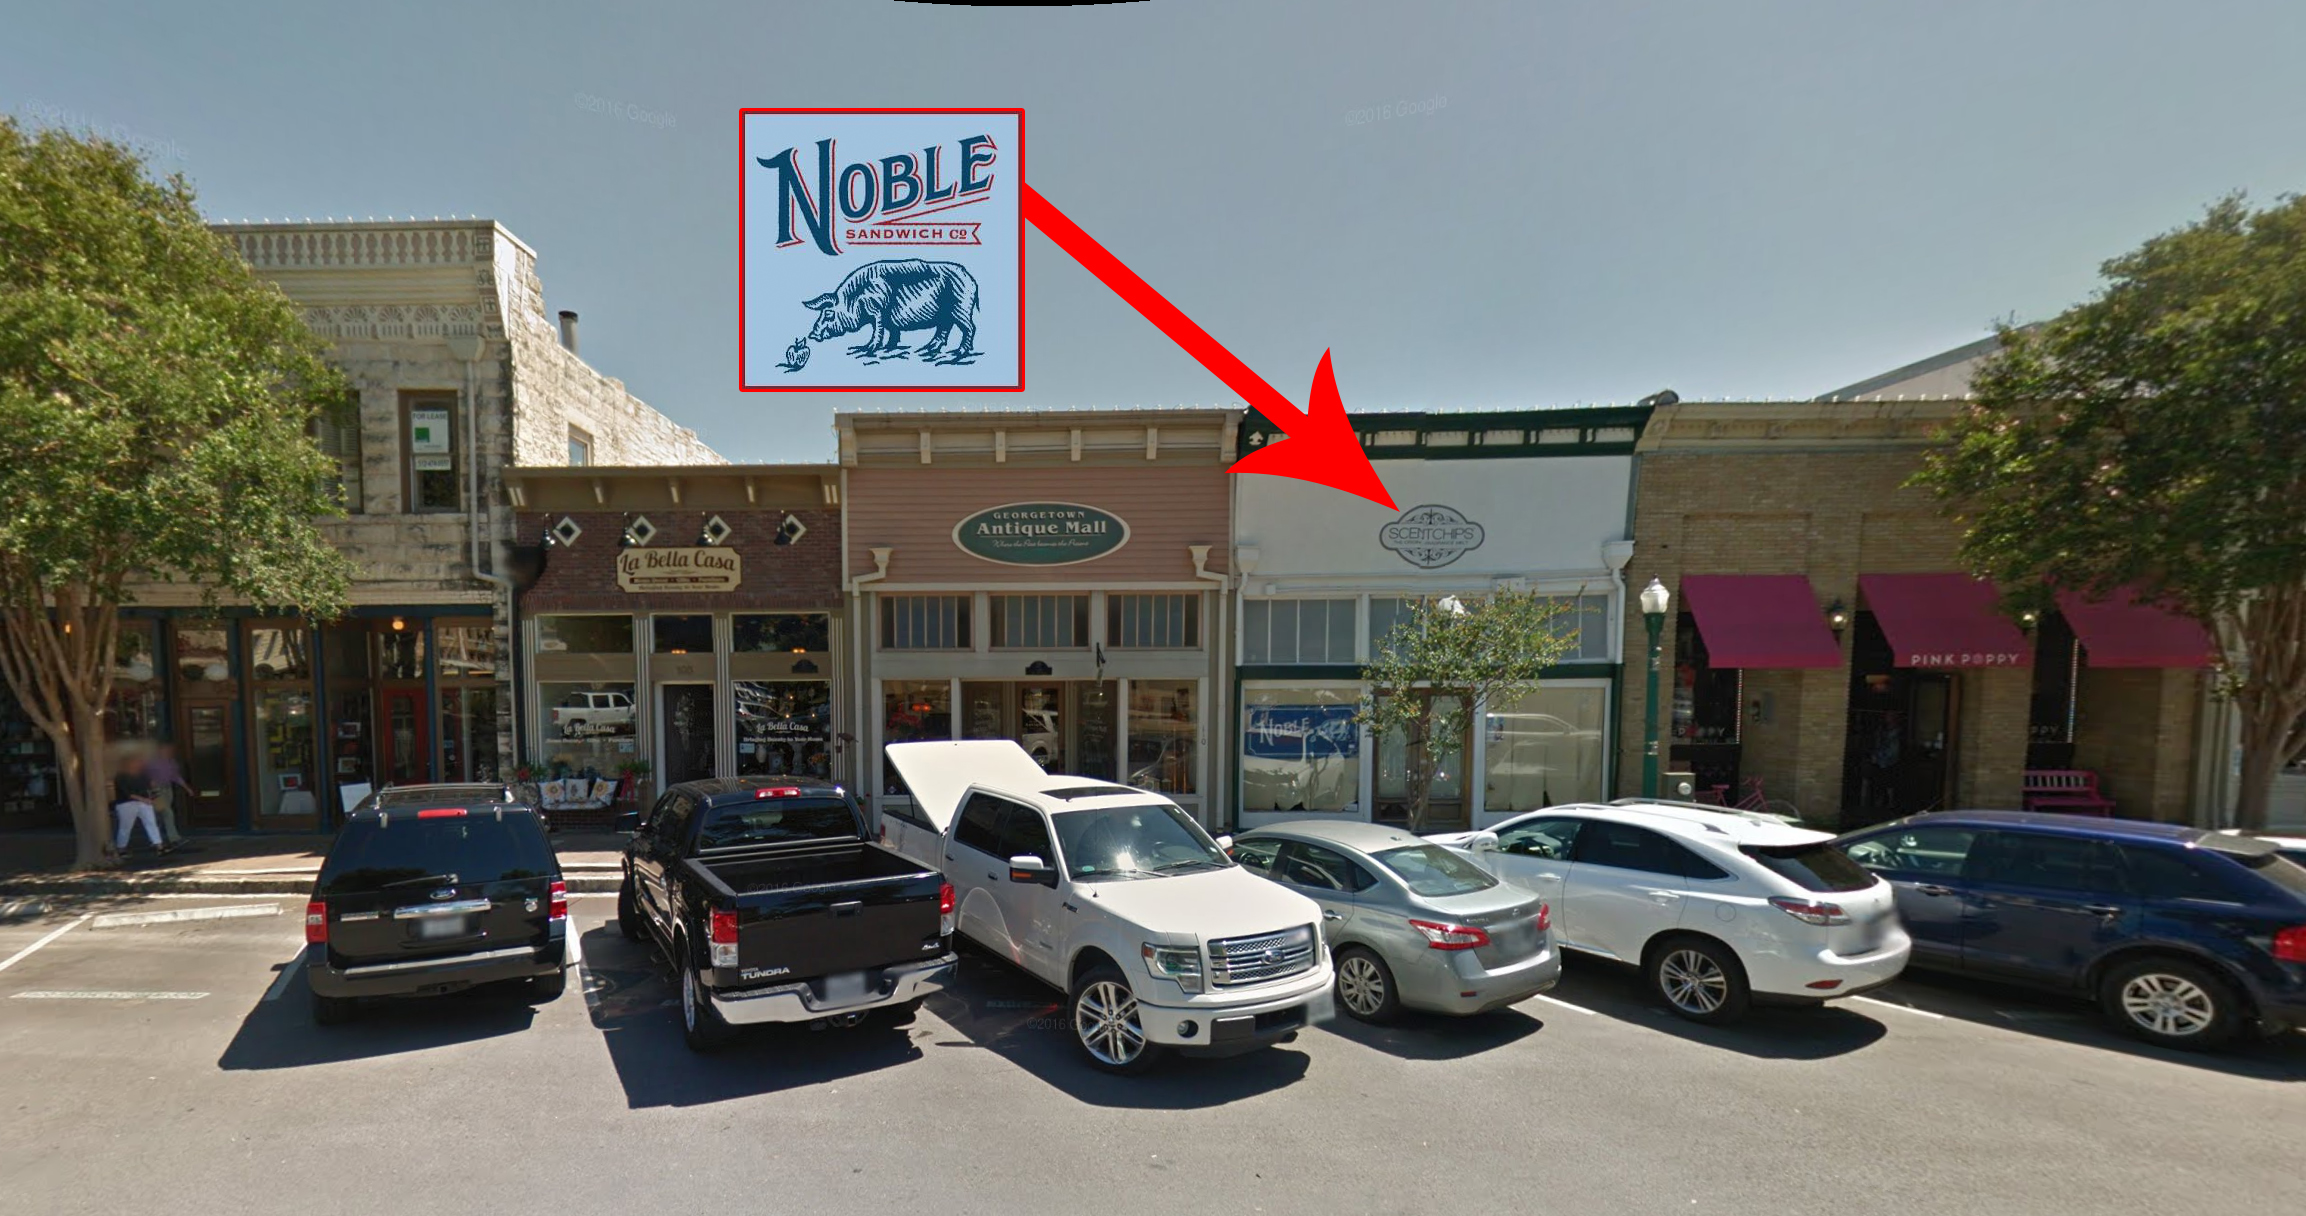 Noble Sandwich Co.'s new home in Georgetown